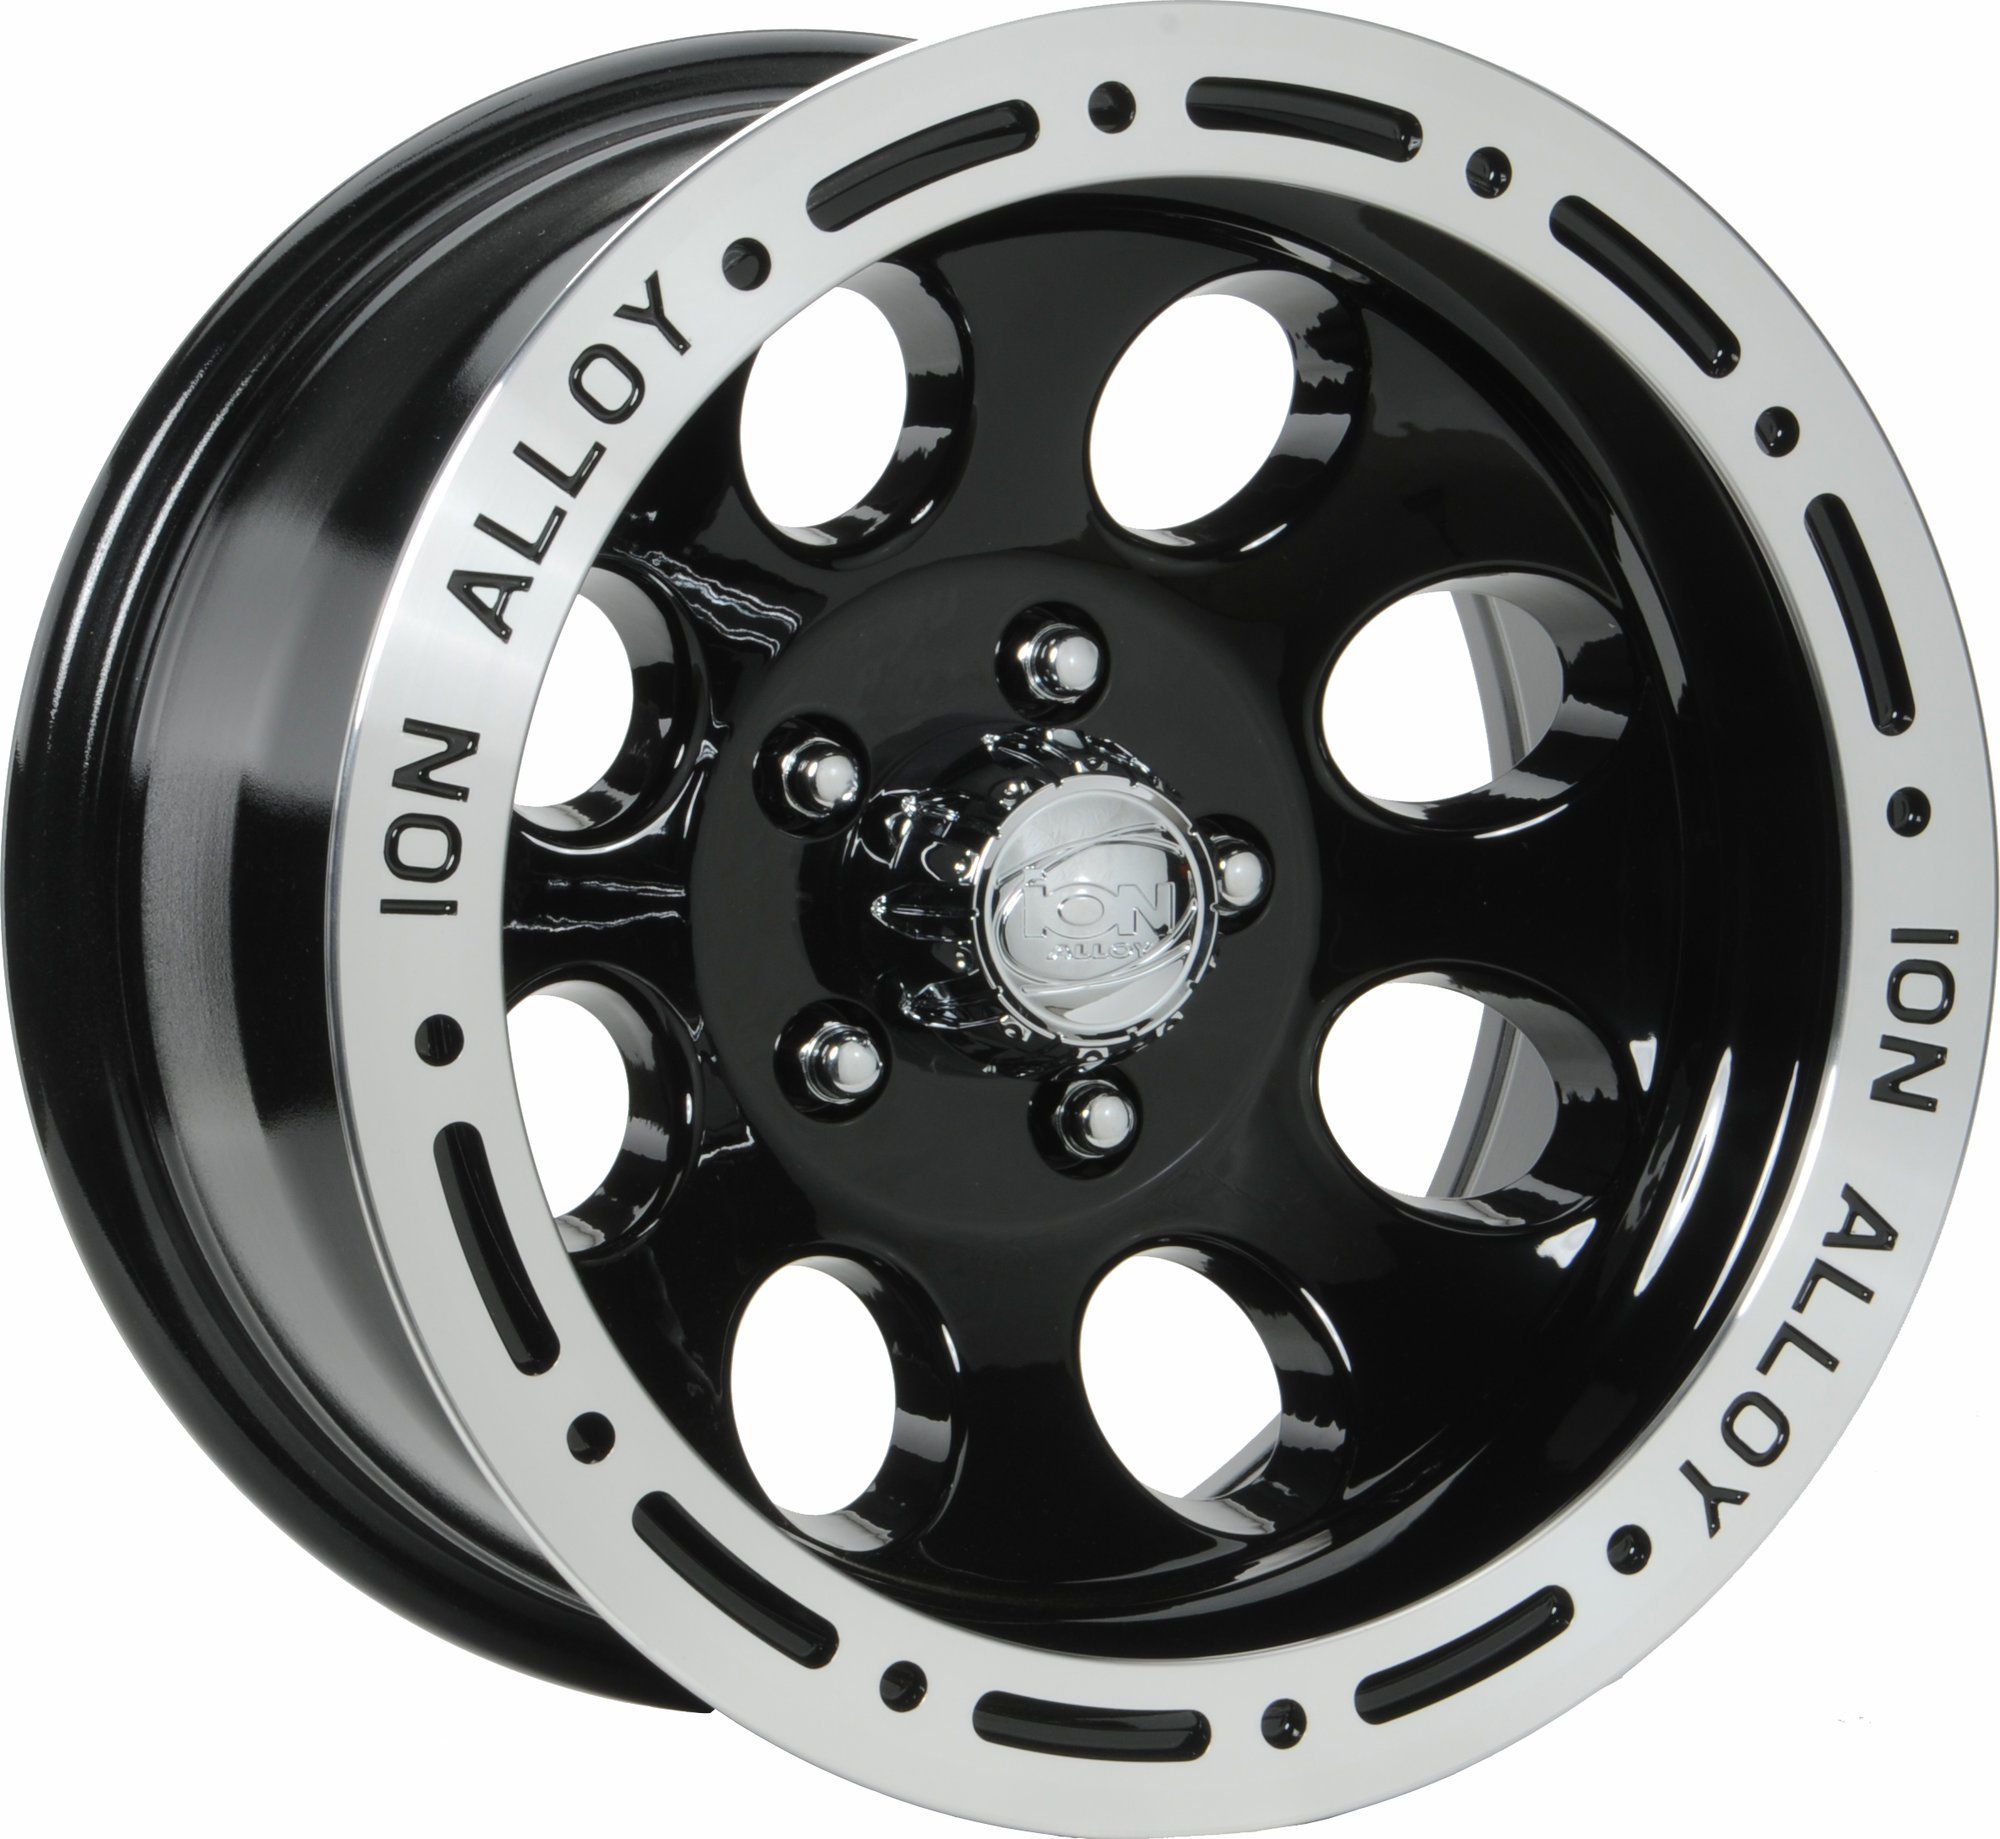 Ion Series 174 Wheel For 87 06 Jeep Wrangler Yj Tj Alloy Wheel